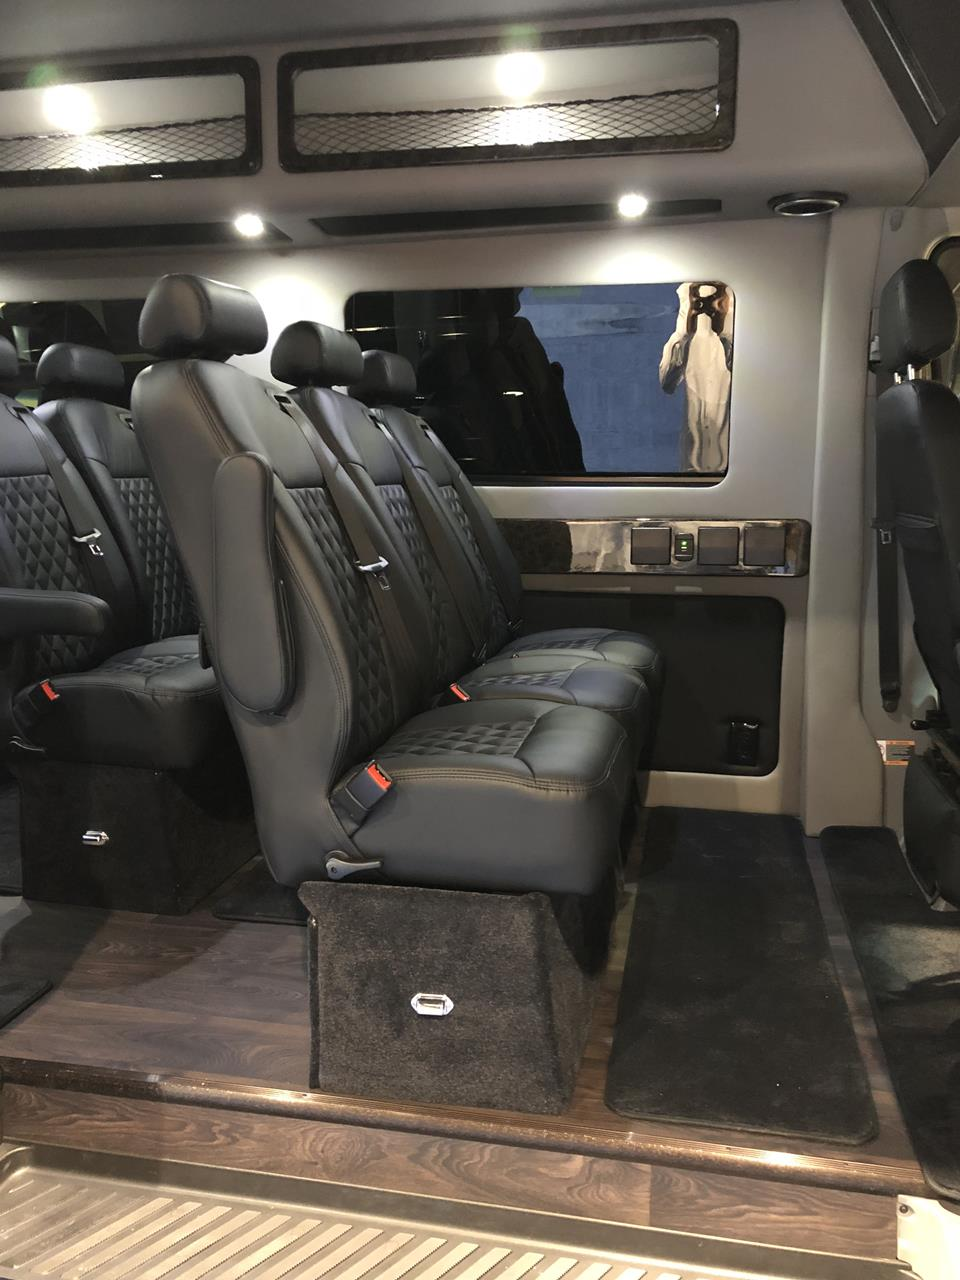 2018 Mercedes Executive Shuttle 14 Passenger Limousine 8